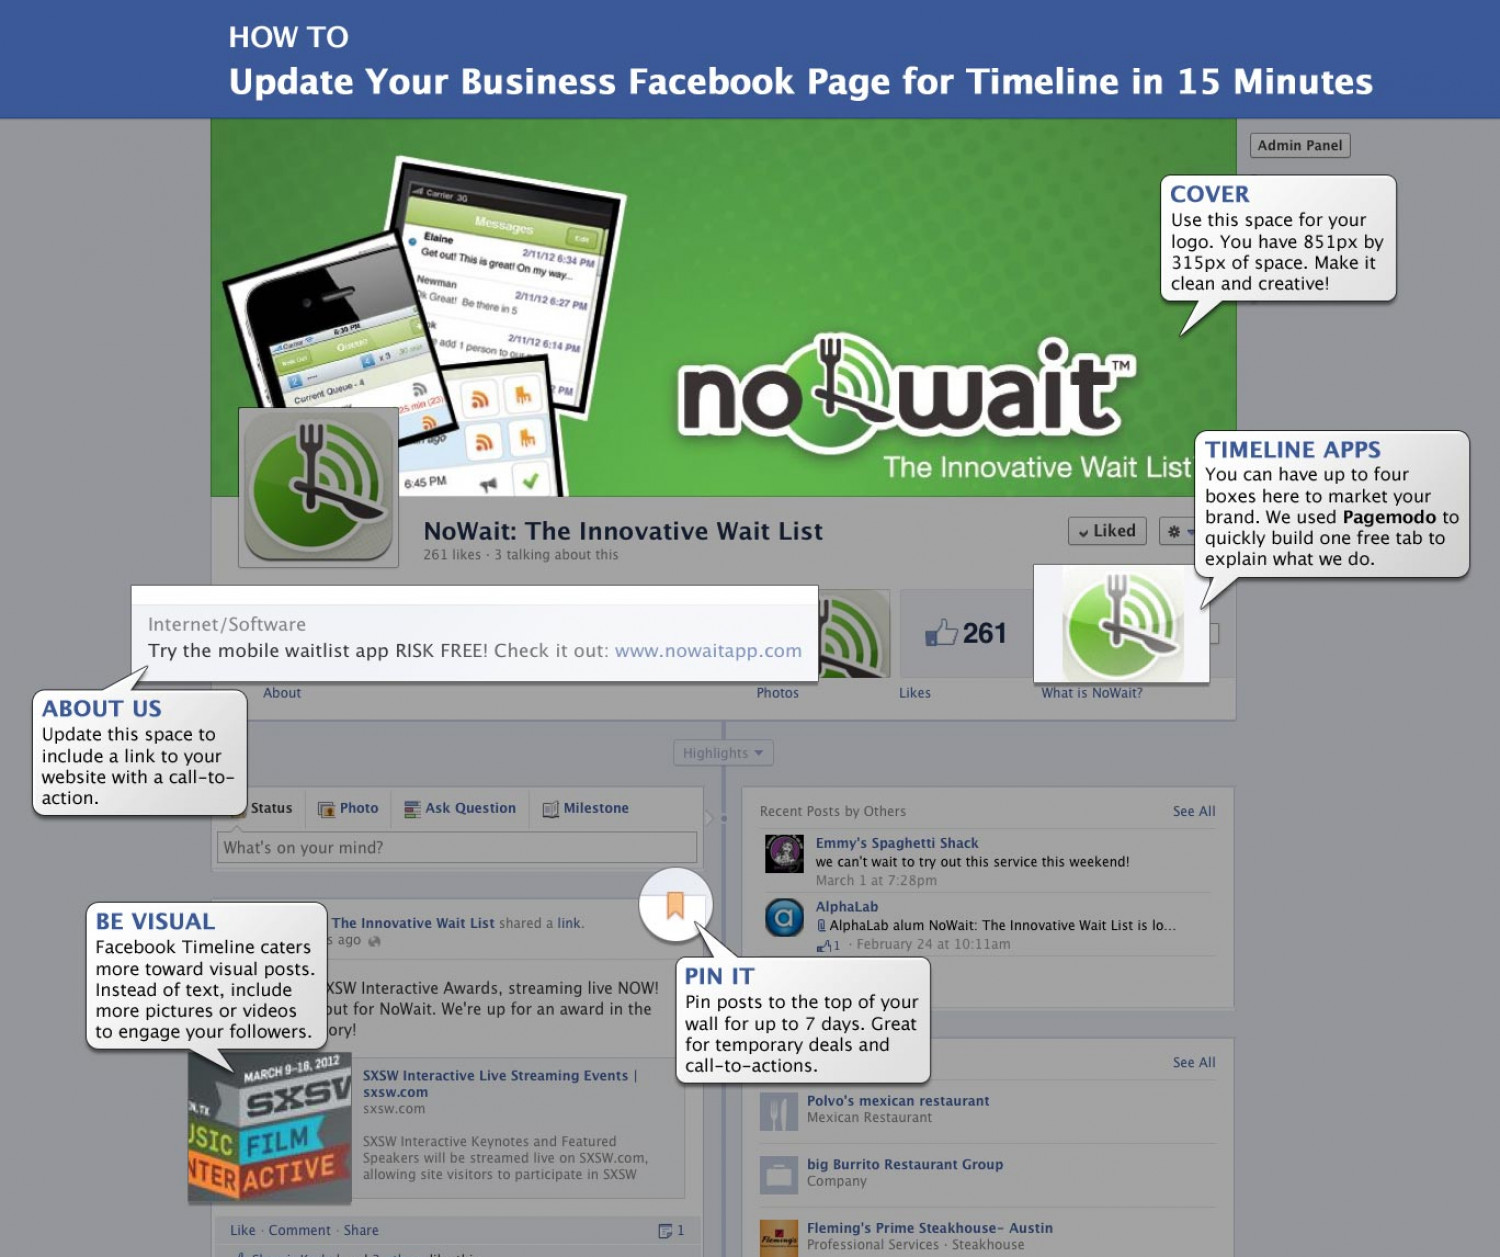 How to Update Your Restaurant Page for Facebook Timeline in 15 Minutes Infographic